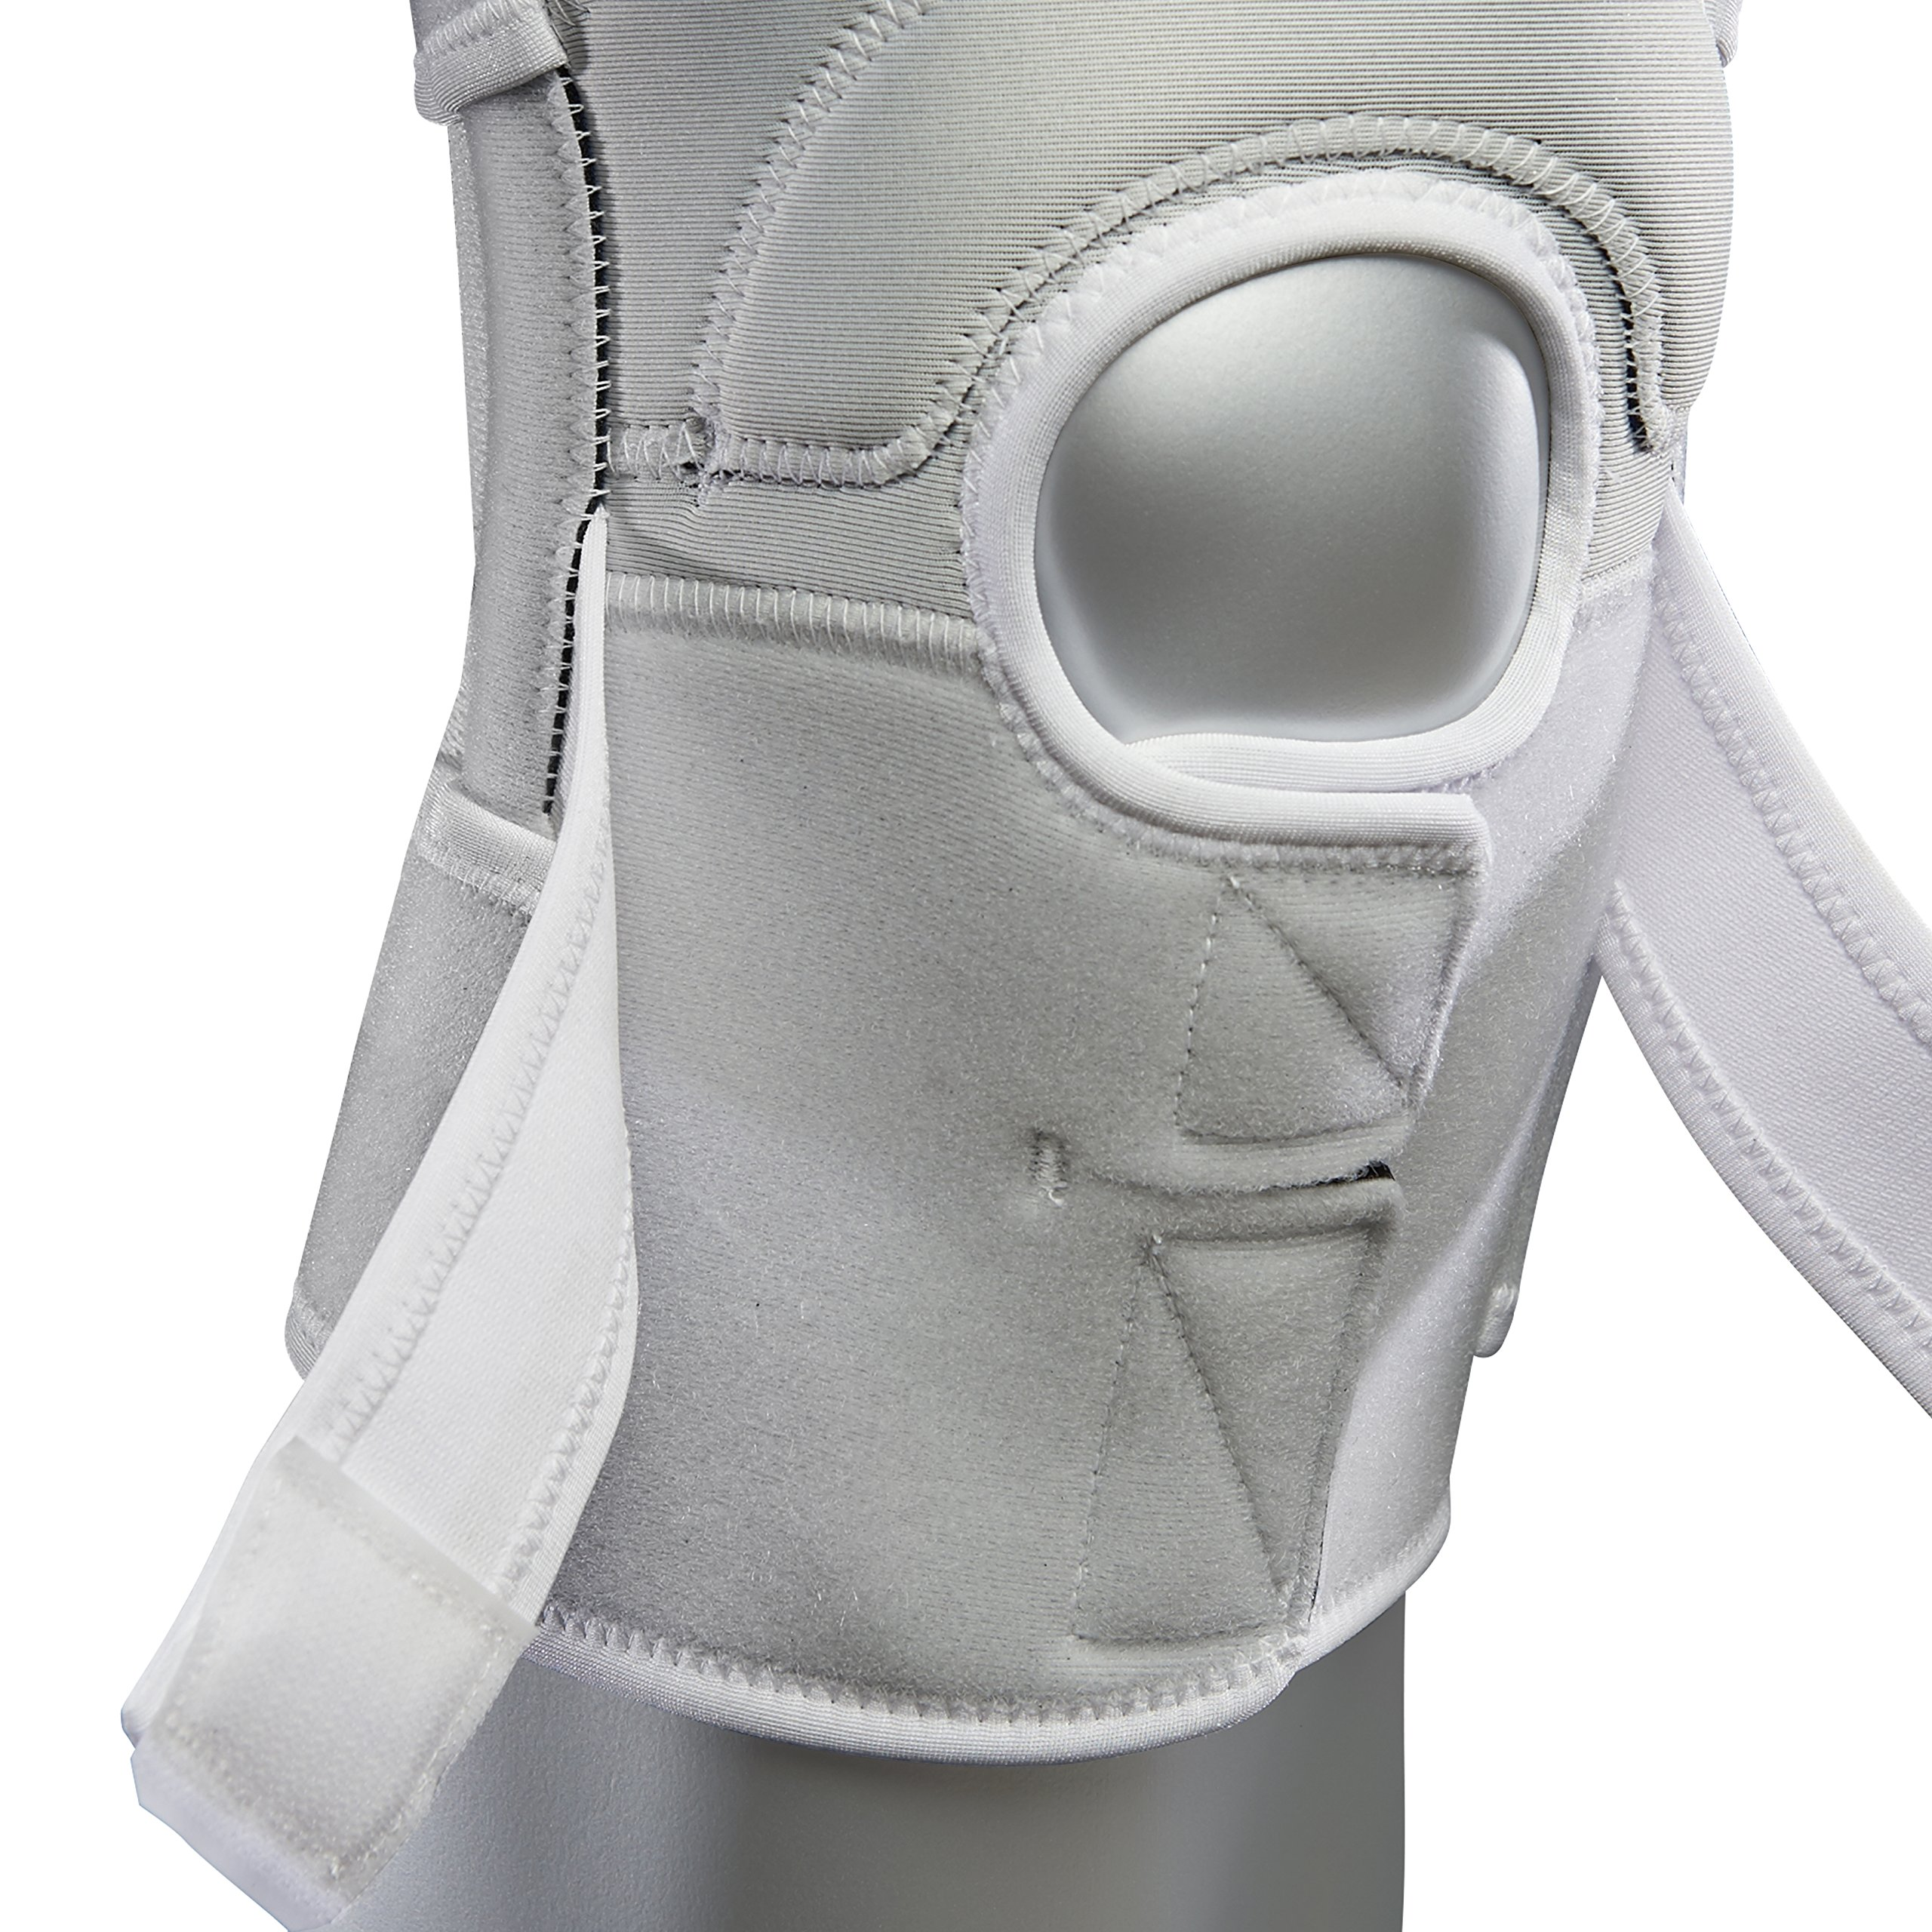 Zamst ZK-7 Knee Brace, White, X-Large by Zamst (Image #3)